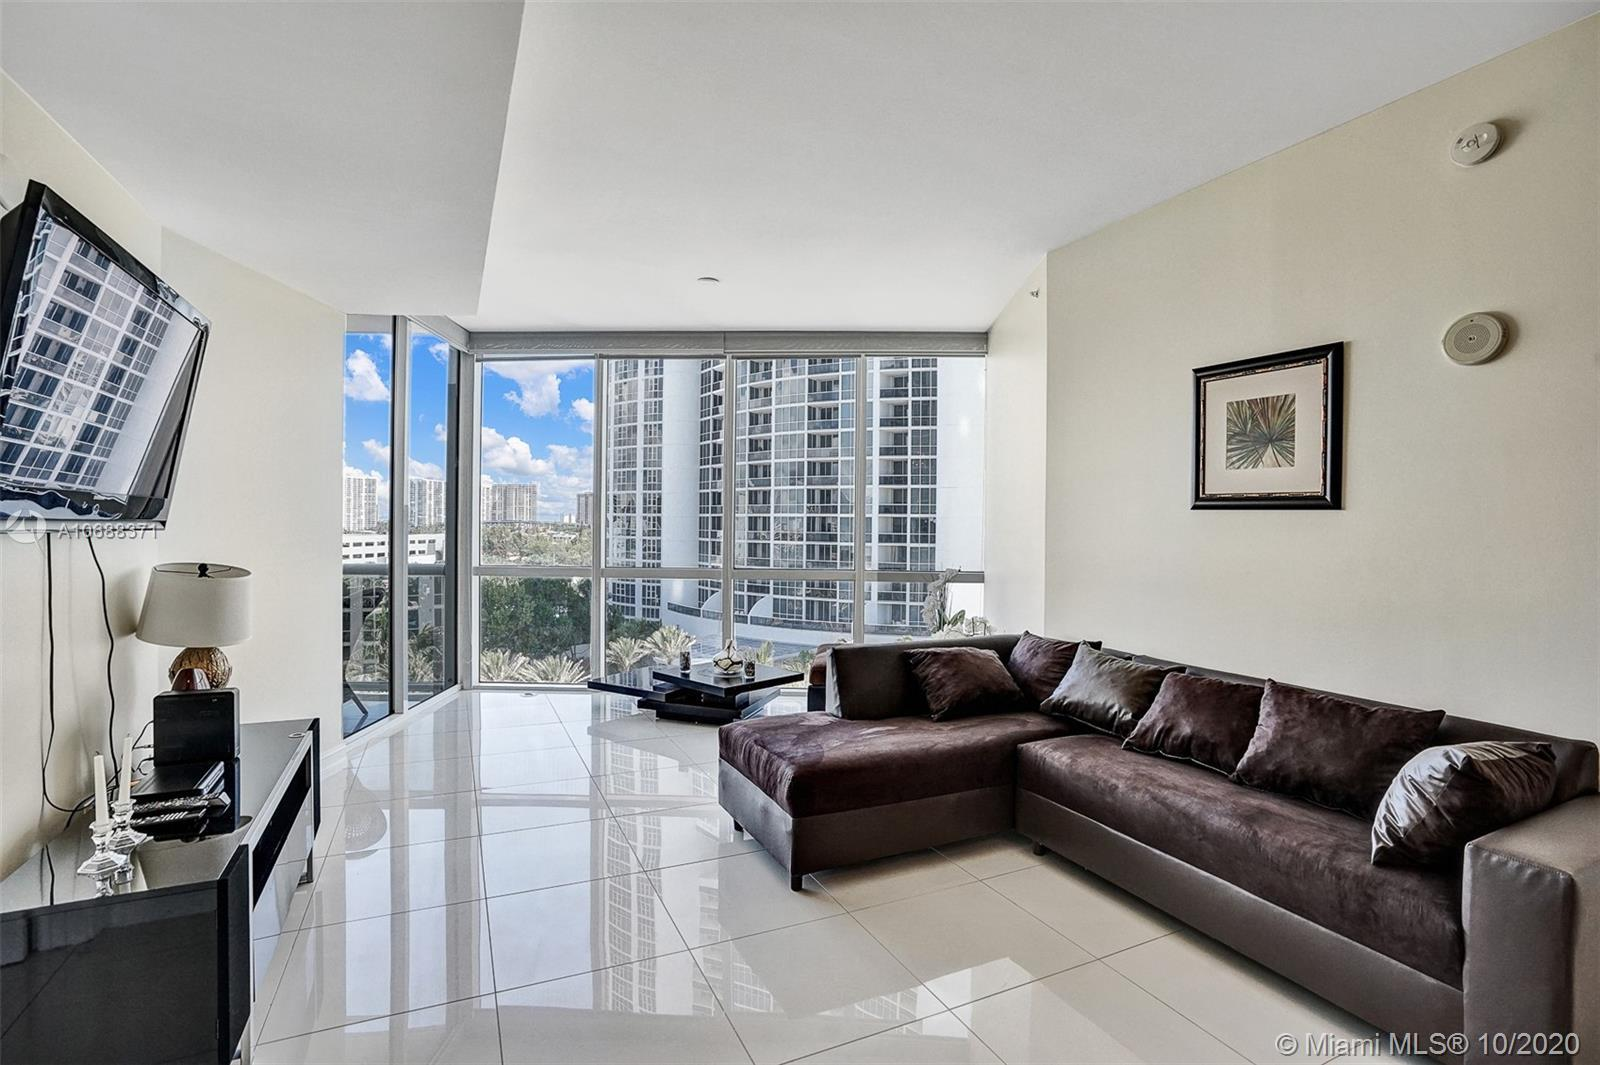 BEST PRICED - GORGEOUS SPACIOUS UNIT LOCATED IN THE HEART IN DESIRABLE SUNNY ISLES BEACH. ENJOY OCAE